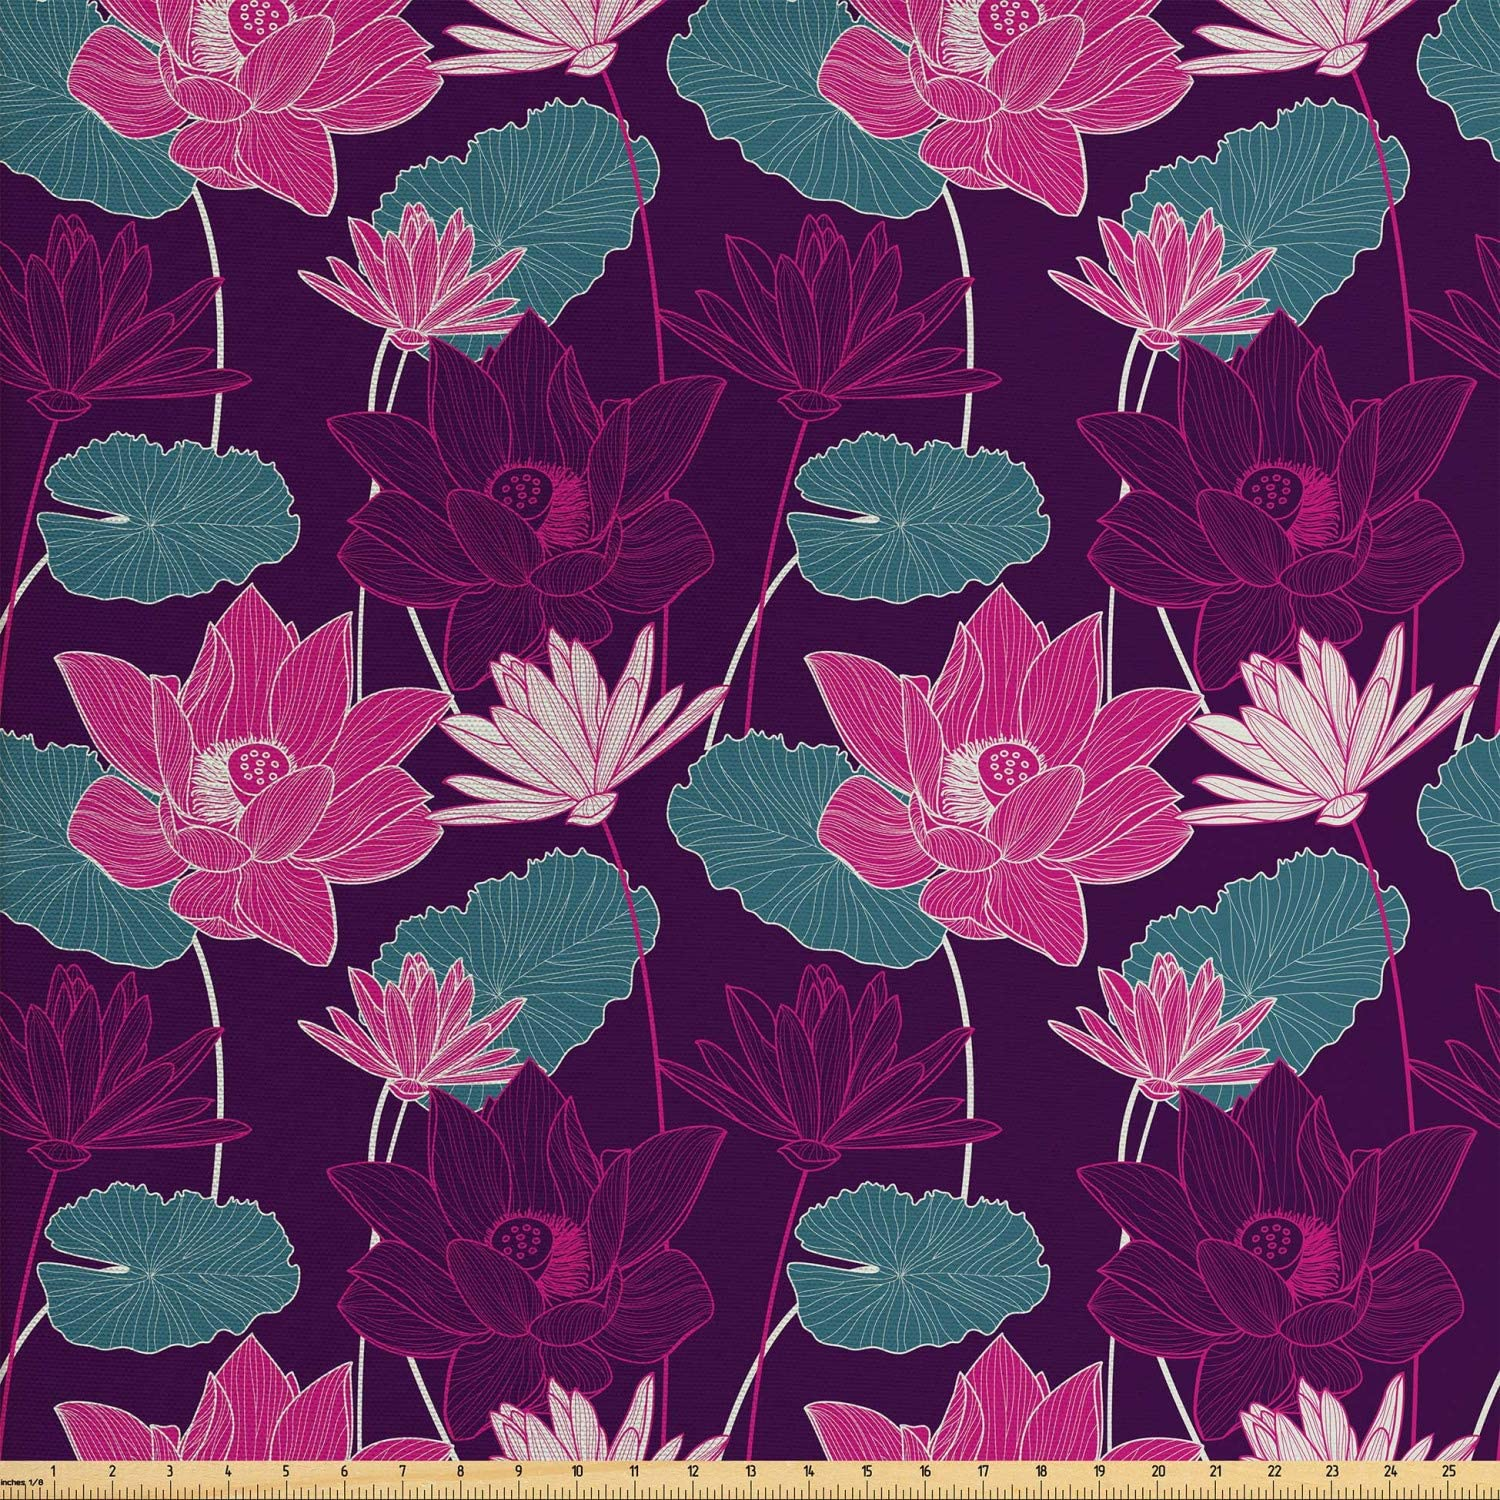 Lunarable Lotus Fabric by The Yard, Oriental Floral Elements Japanese Nature Elements Spring in Purple Shades, Decorative Fabric for Upholstery and Home Accents, Dark Purple Multicolor